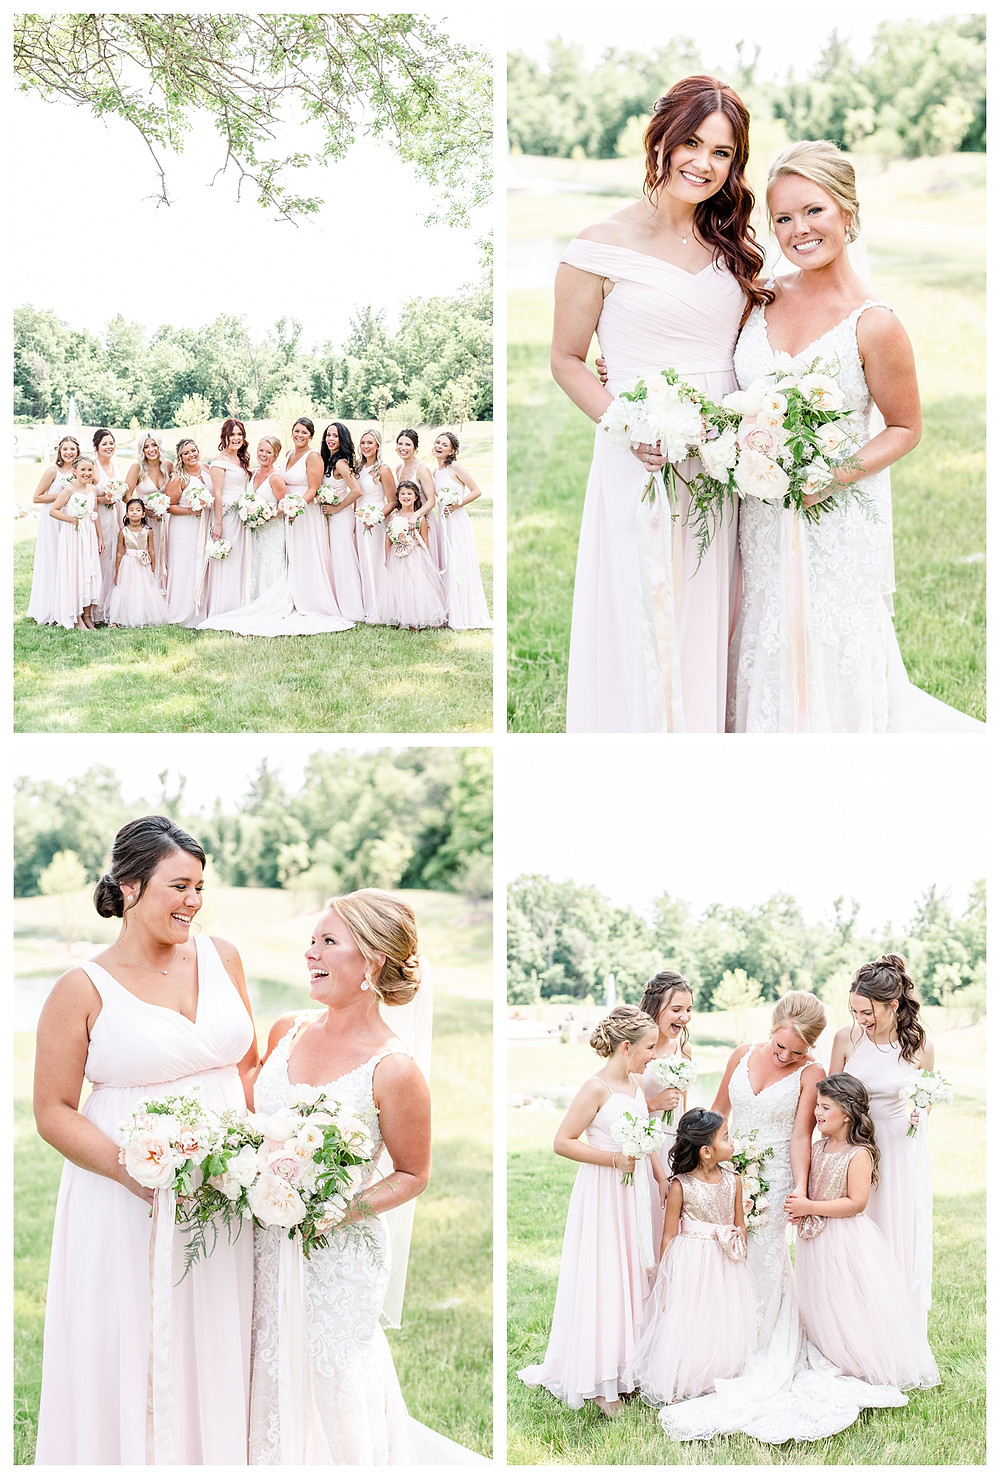 Josh and Andrea light airy joyful style wedding photography husband and wife photographer team michigan pictures photo shoot poses spring bride and groom White Oak Farm Venue bridesmaids